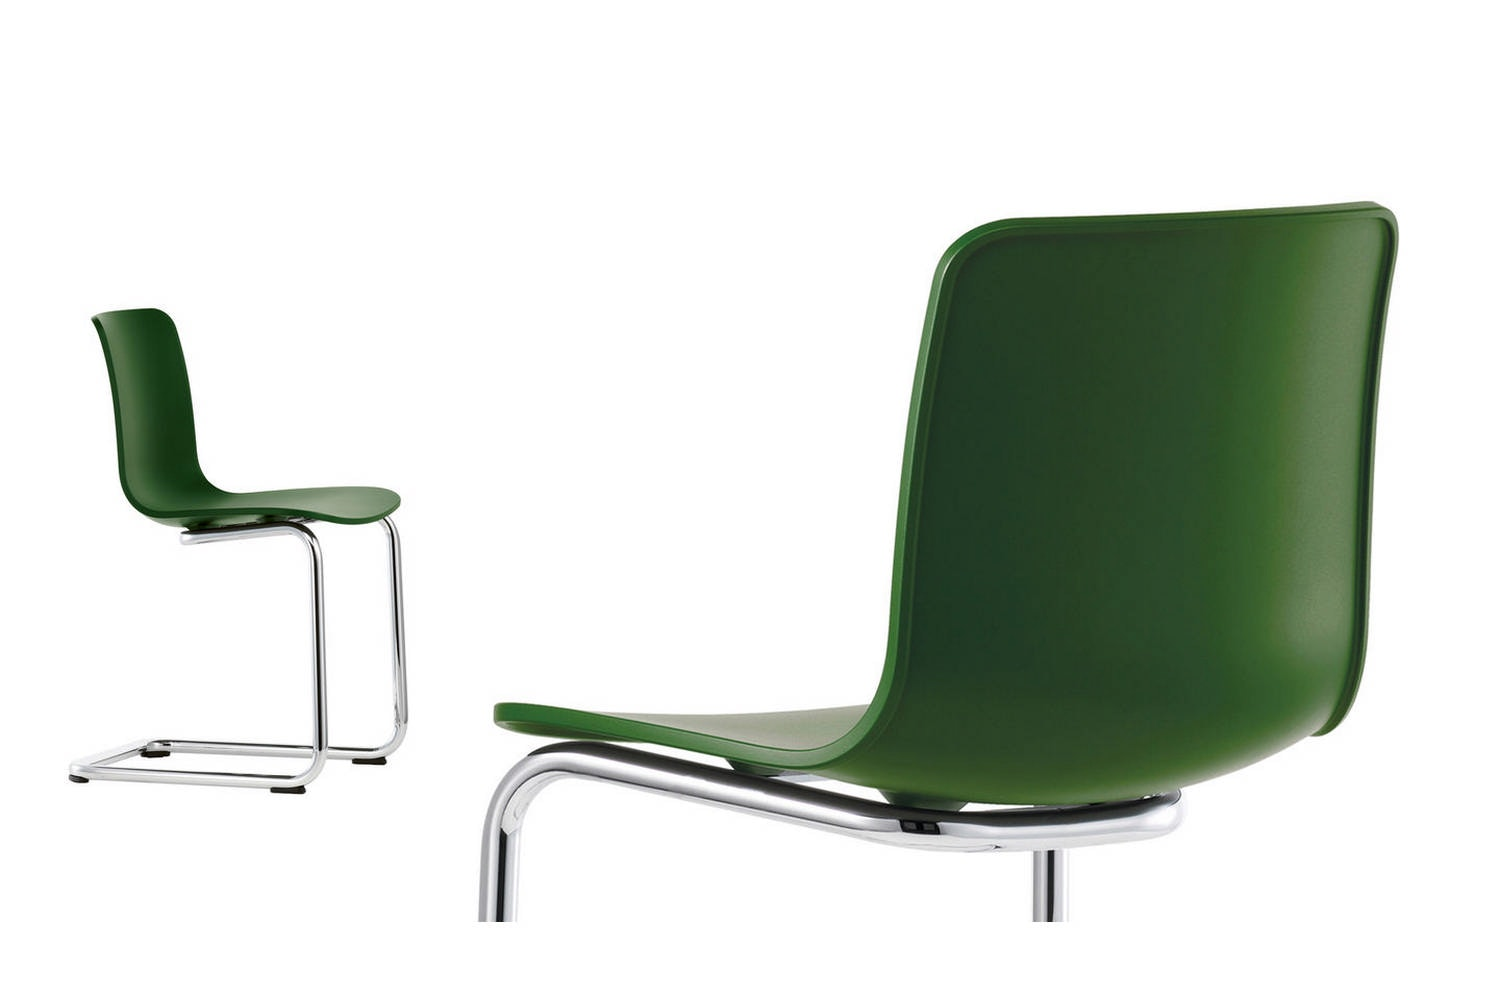 HAL Cantilever Chair by Jasper Morrison for Vitra